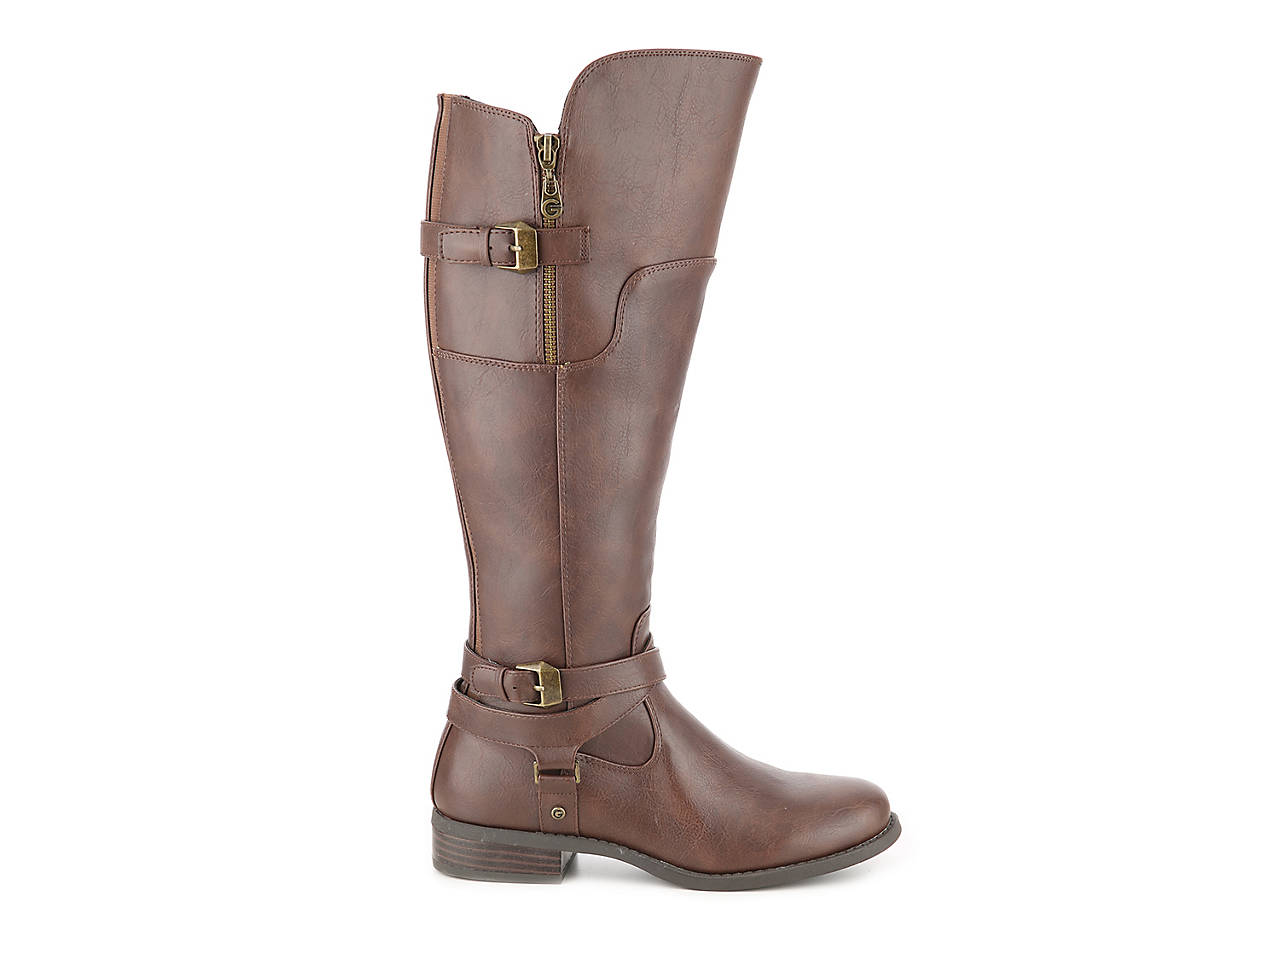 d741c9a6a570 G by GUESS Hilight Wide Calf Riding Boot Women s Shoes